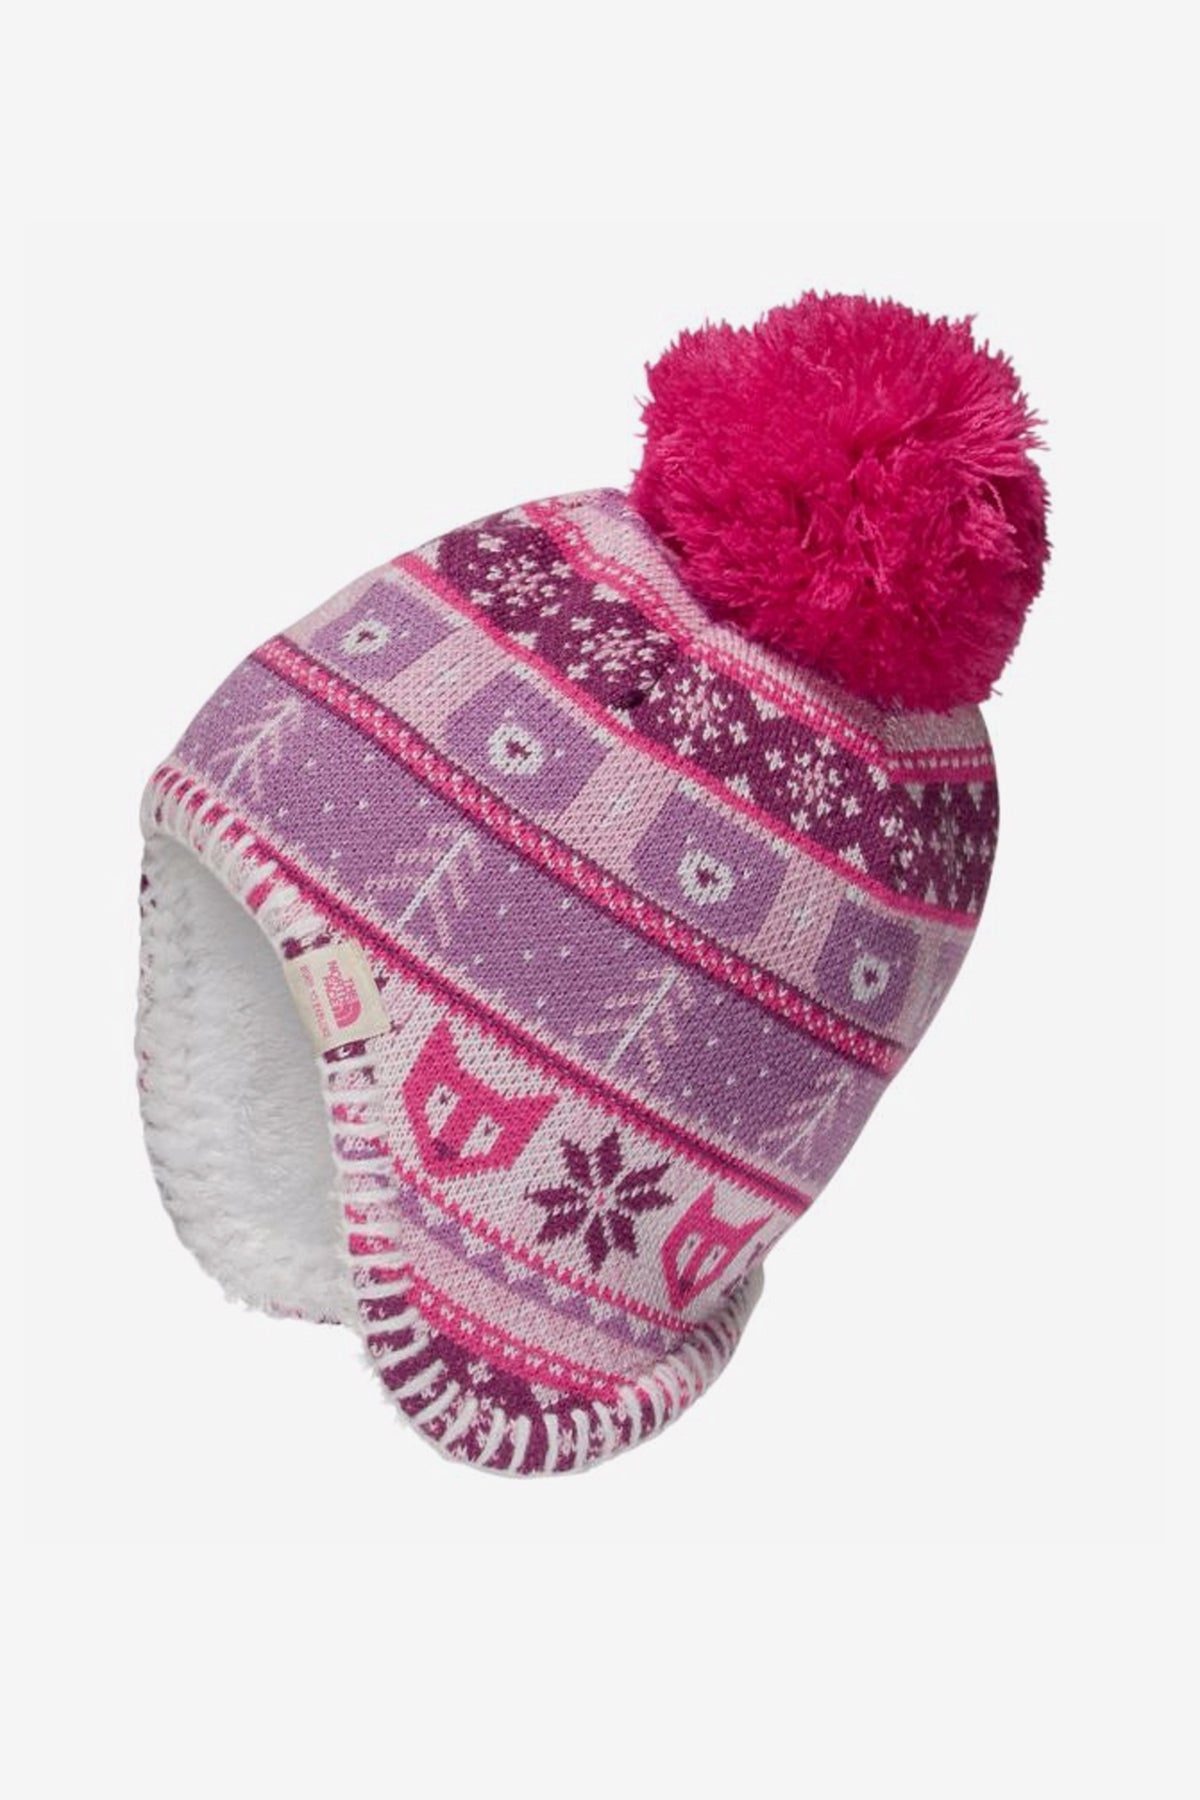 The North Face Baby Faroe Beanie - Pink - Mini Ruby 04d7ac6c7af